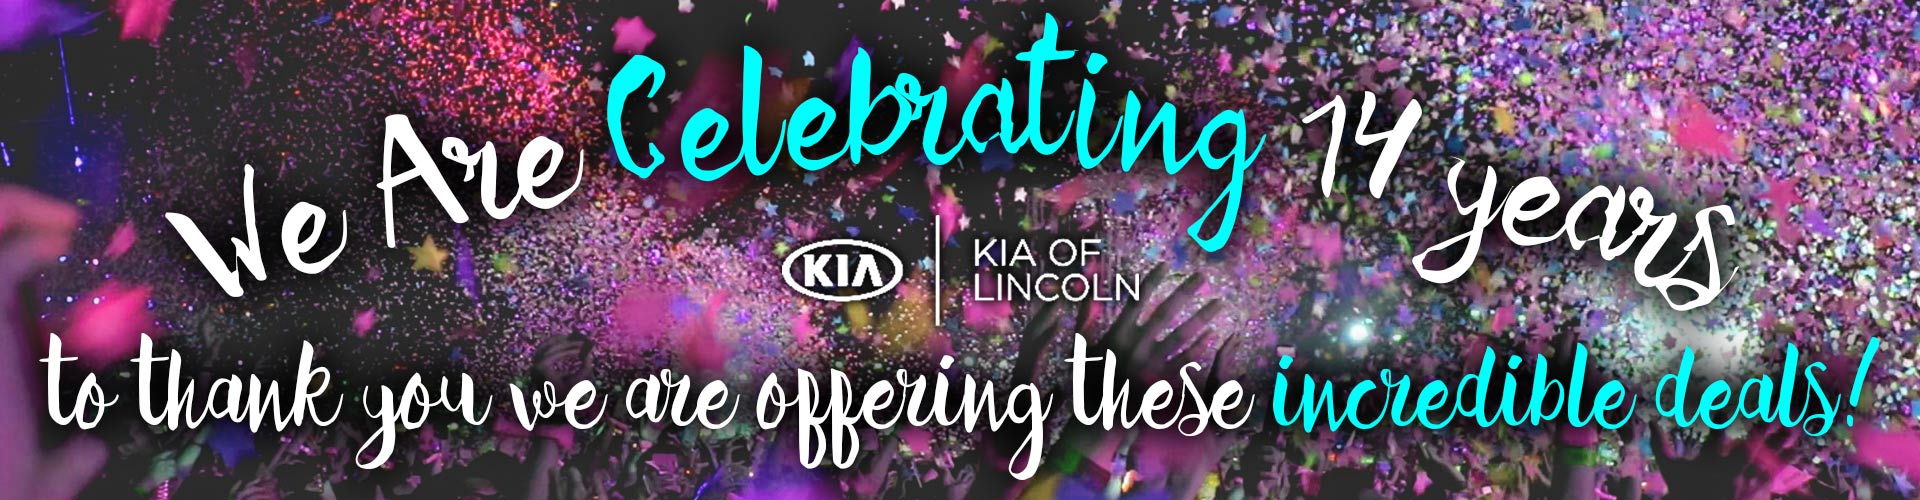 Kia Of Lincoln Celebrating 14 Years